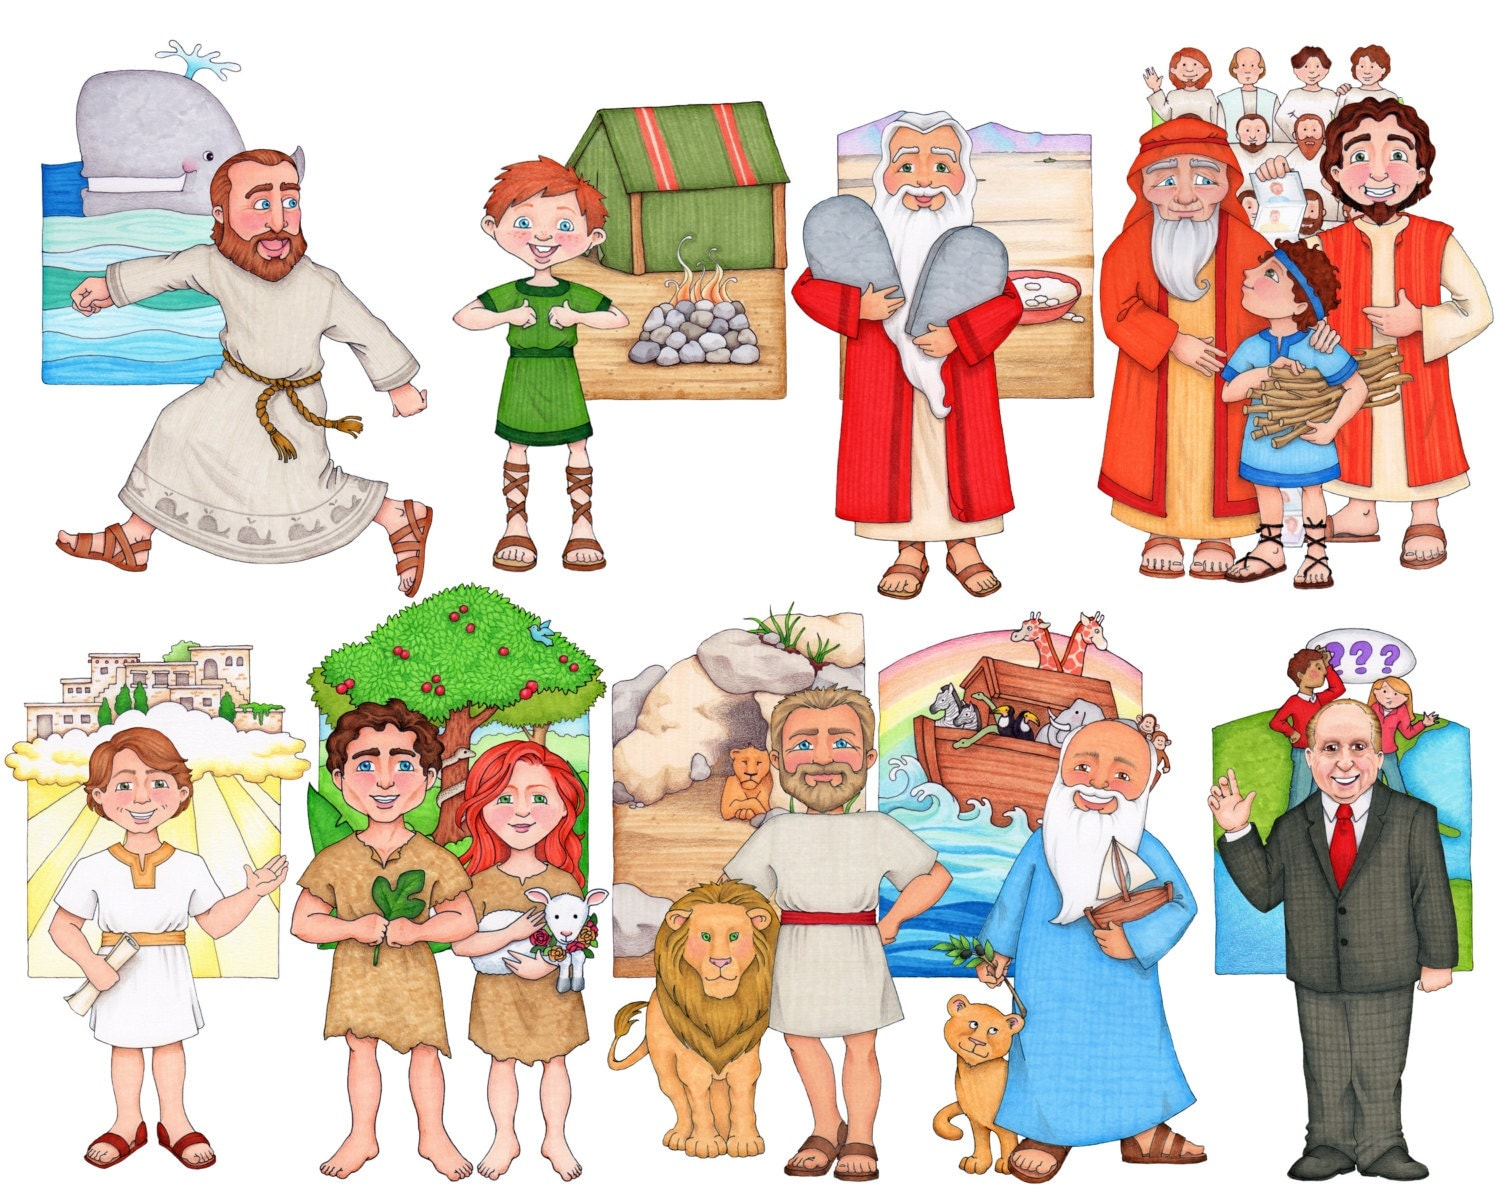 clipart of the book of mormon - photo #28